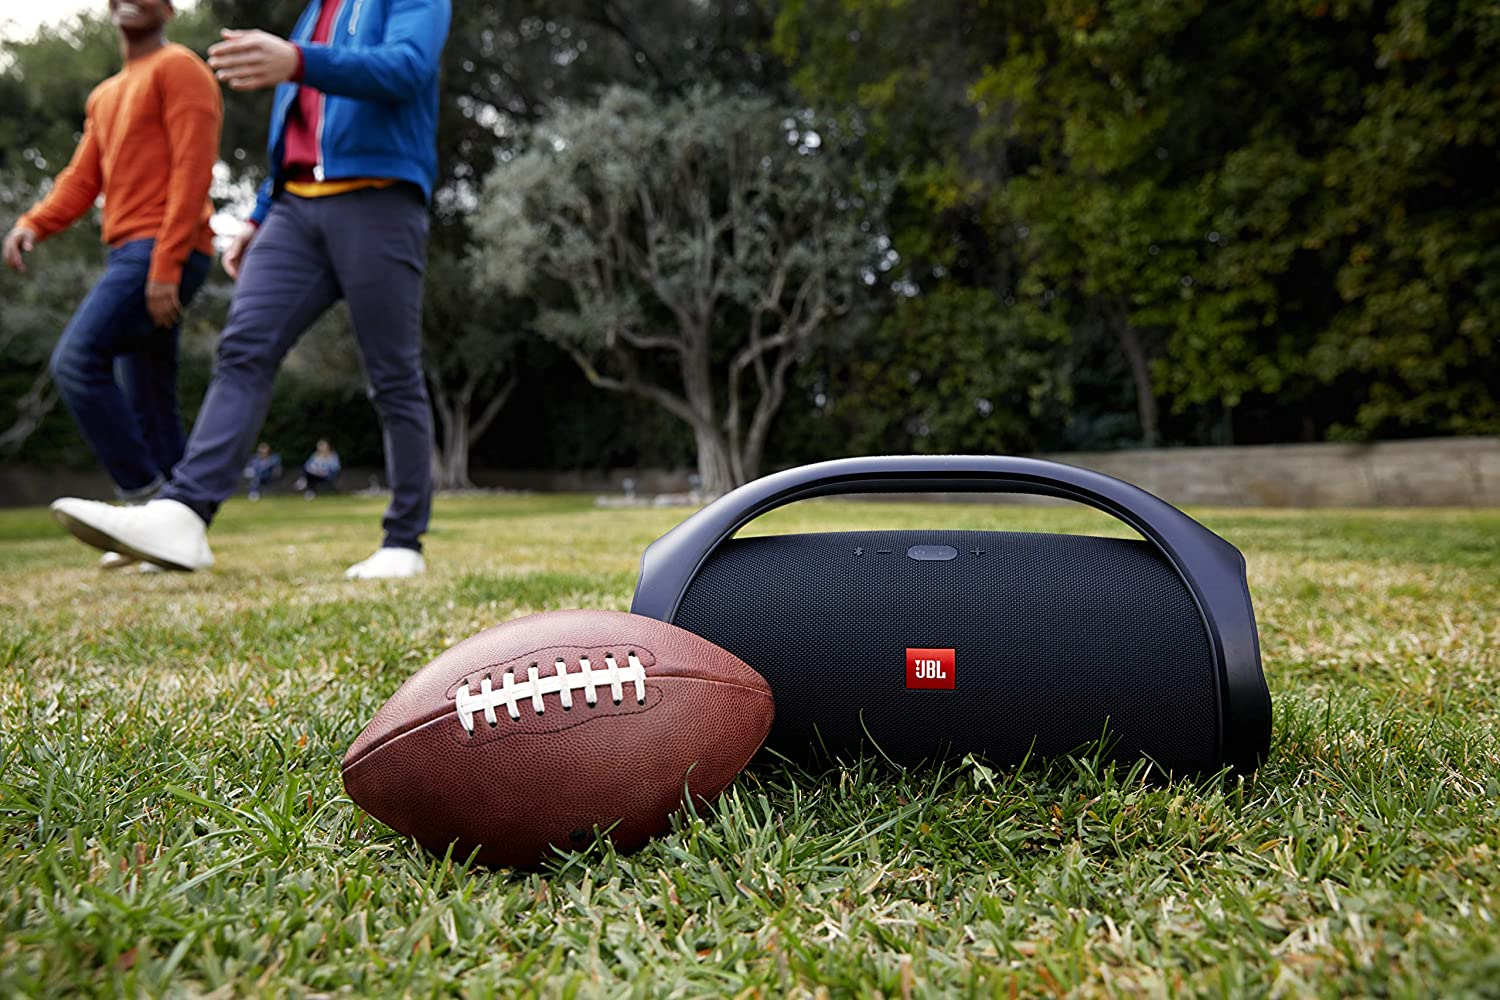 Bluetooth speaker and football in the grass